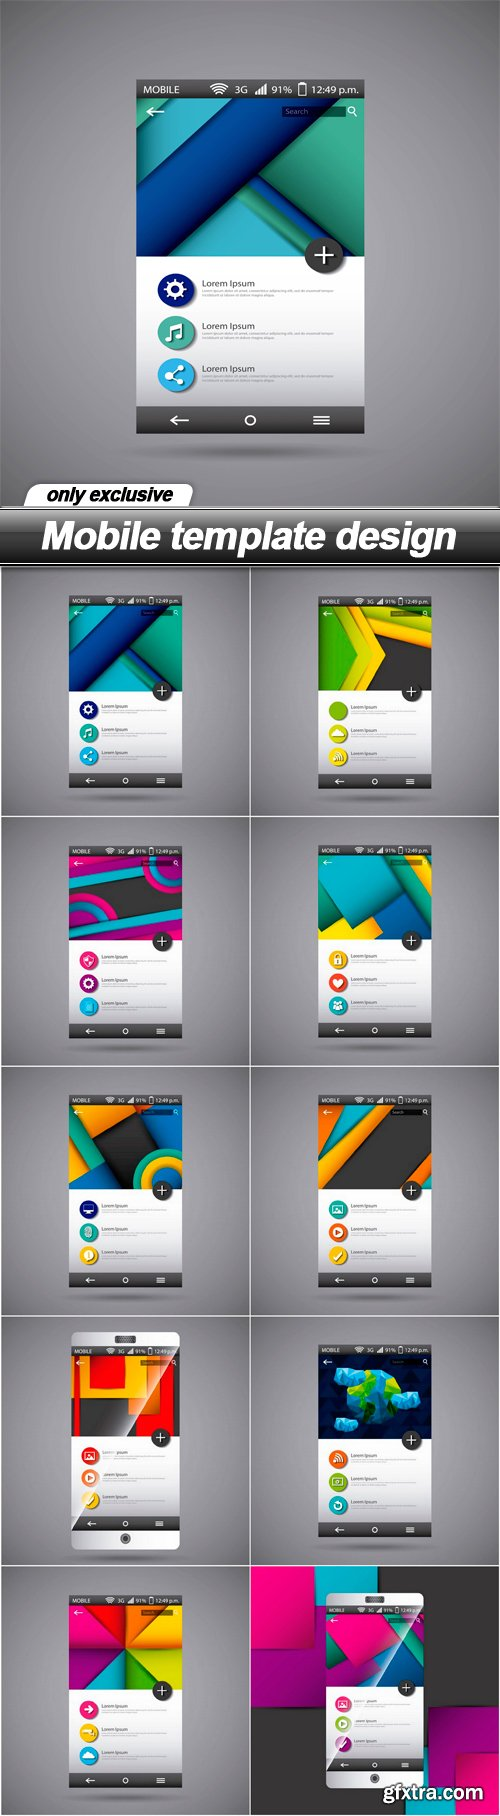 Mobile template design - 10 EPS